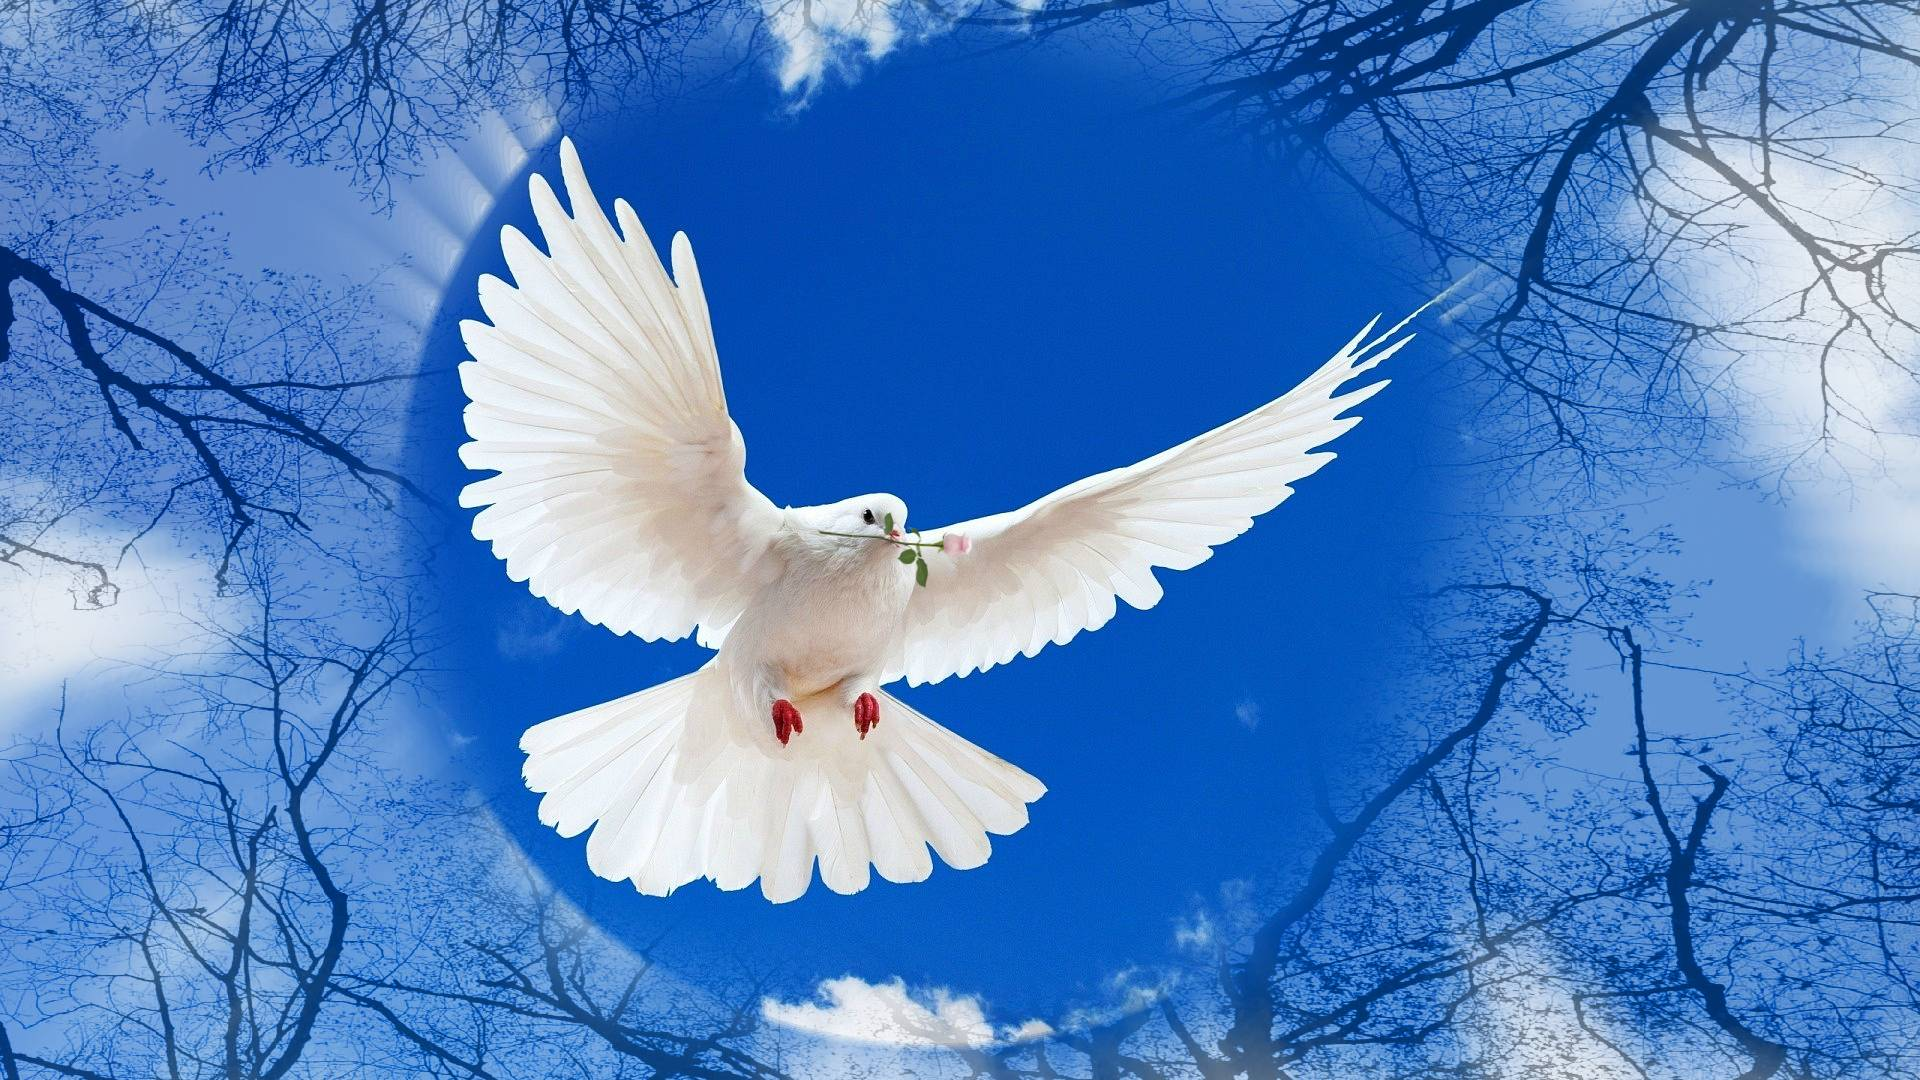 White Dove Wallpapers Wallpaper Cave